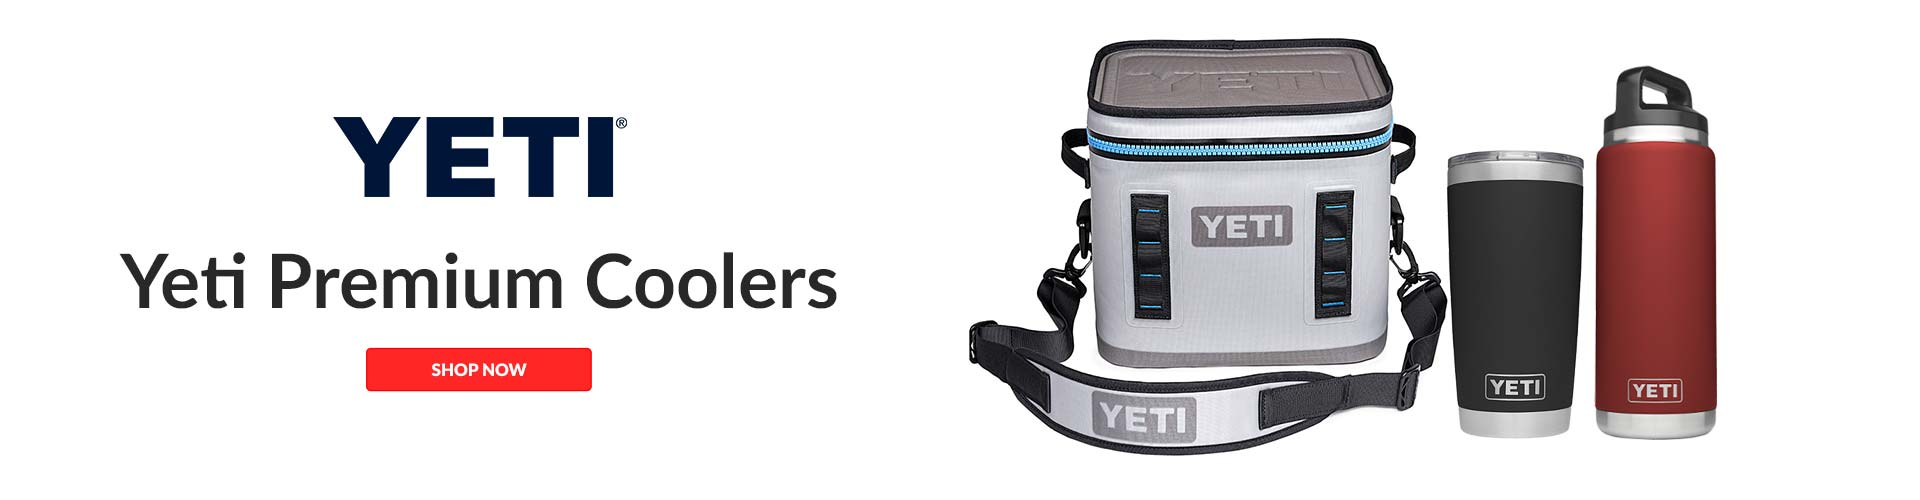 Shop Our Selection Of Yeti Premium Coolers Available For Sale At Source For Sports Stores Near You. Shop Online Or Reserve & Pick Up In Store.